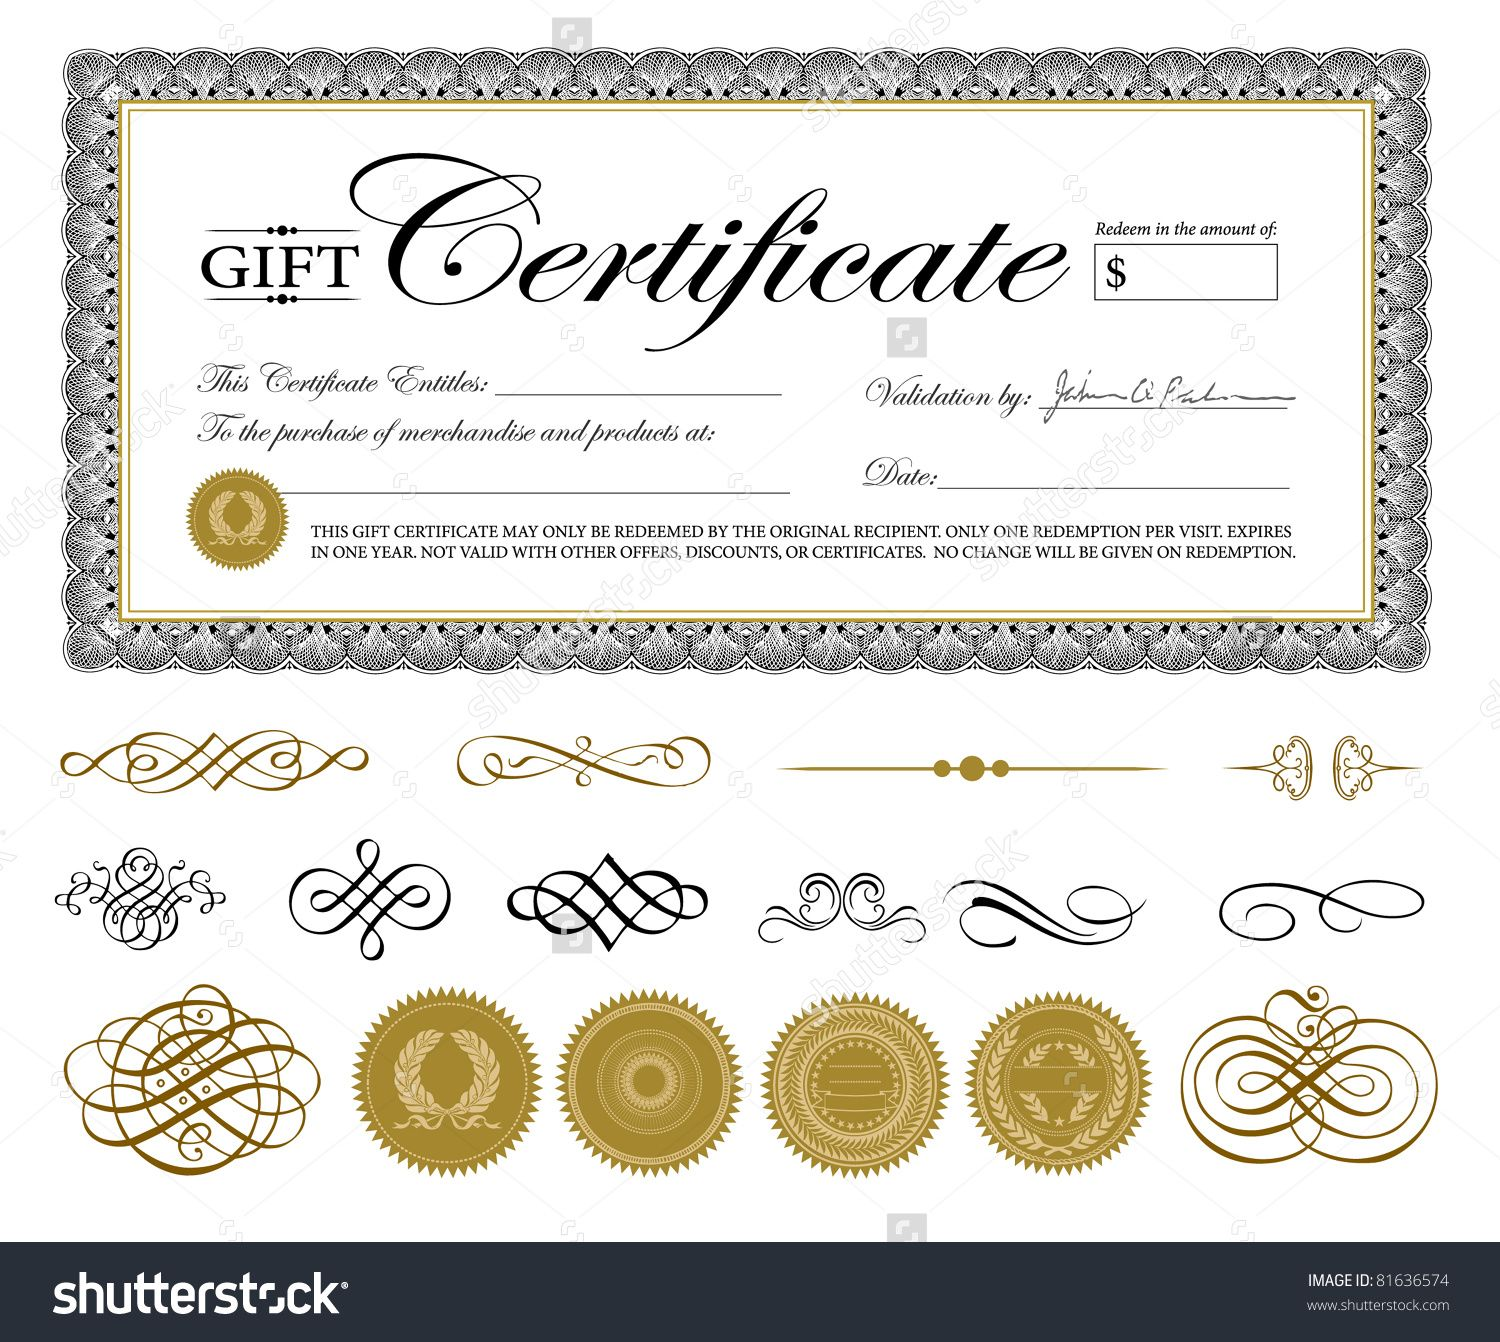 Vector Premium Certificate Template and Ornaments. Easy to edit ...